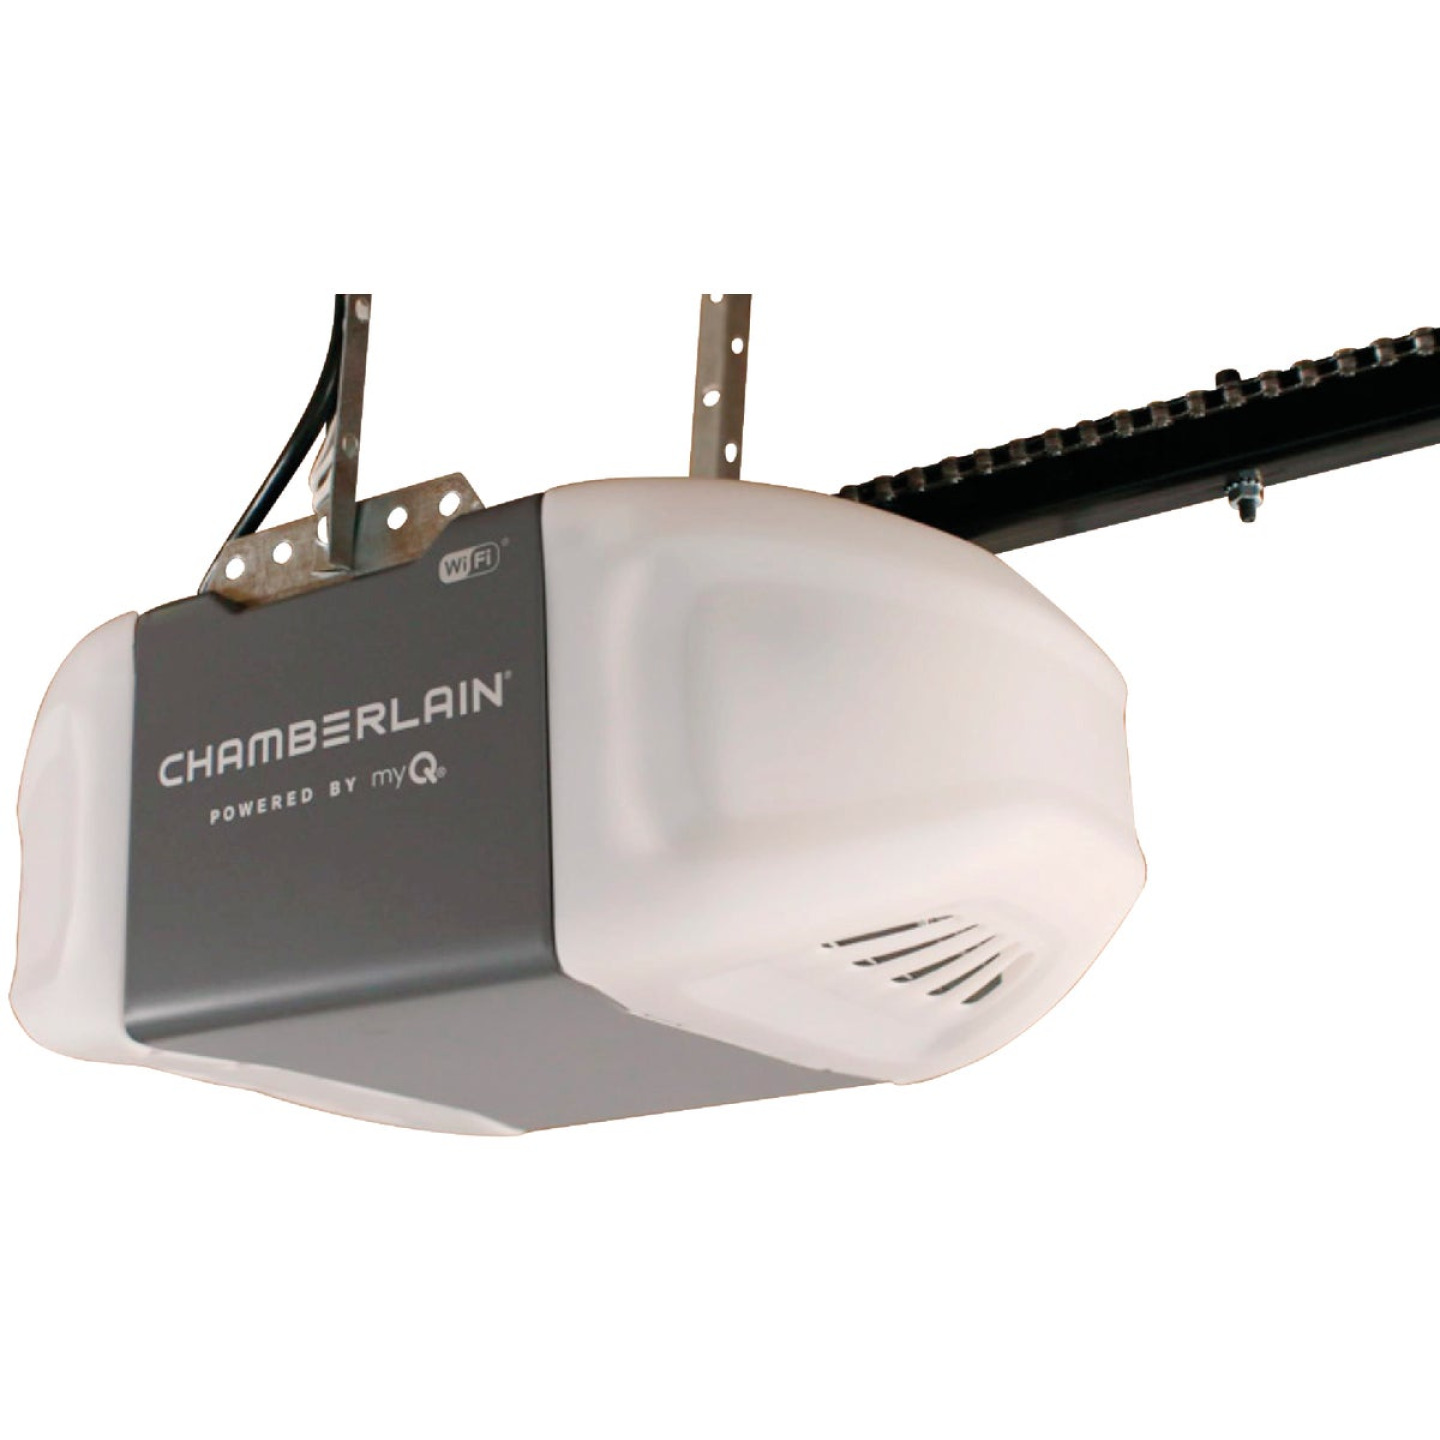 Chamberlain 1/2 HP Smartphone-Controlled Durable Chain Drive Garage Door Opener with WiFi and MED Lifting Power Image 1